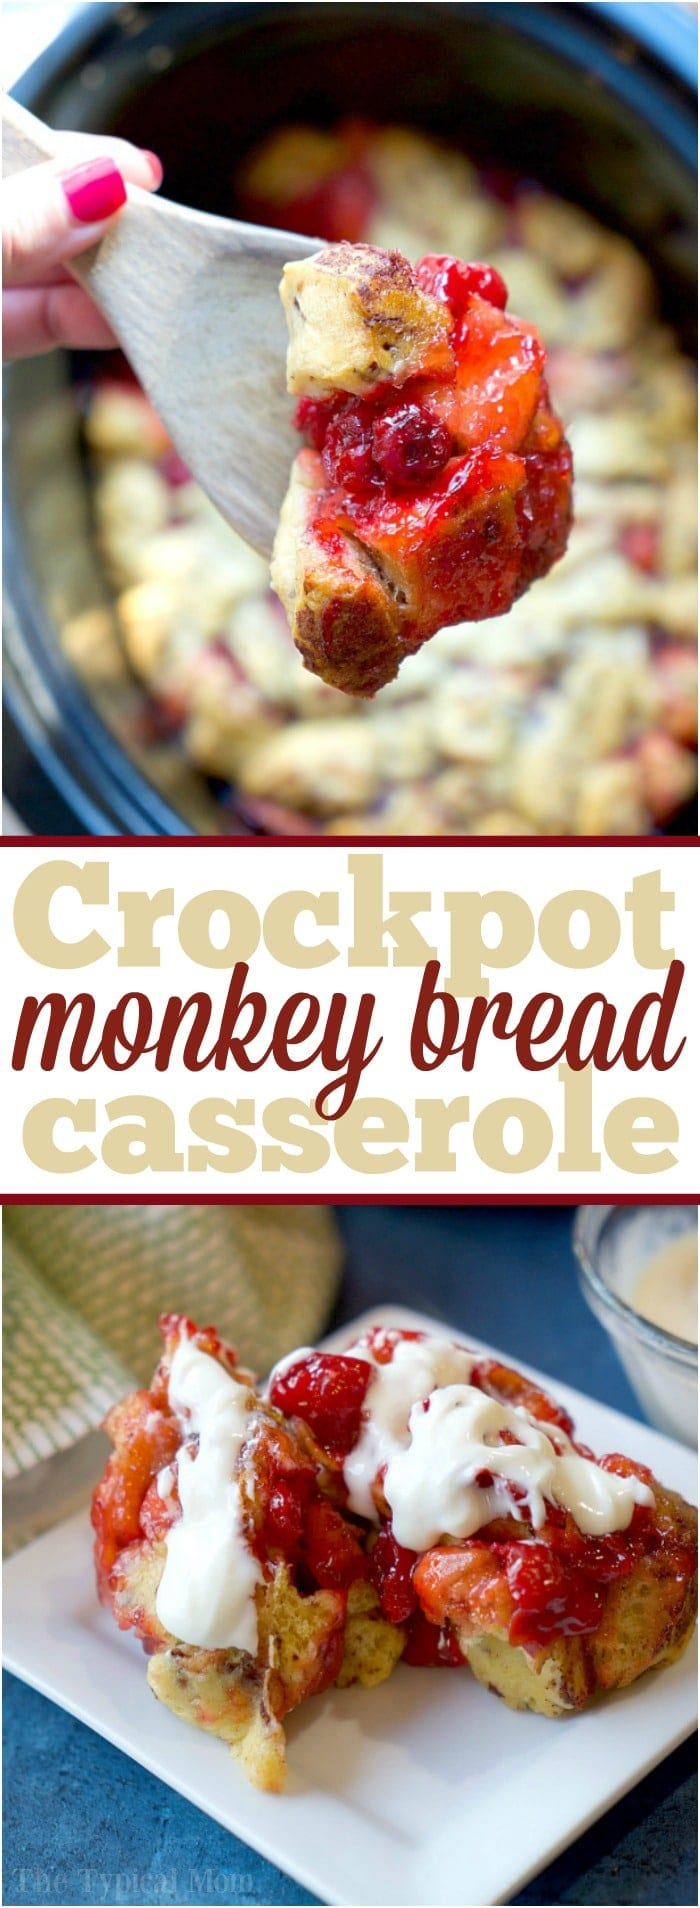 This easy crockpot cinnamon roll monkey bread casserole is perfect for dessert or breakfast! Use any pie filling you like and with 3 ingredients it's done! #monkeybread #crockpot